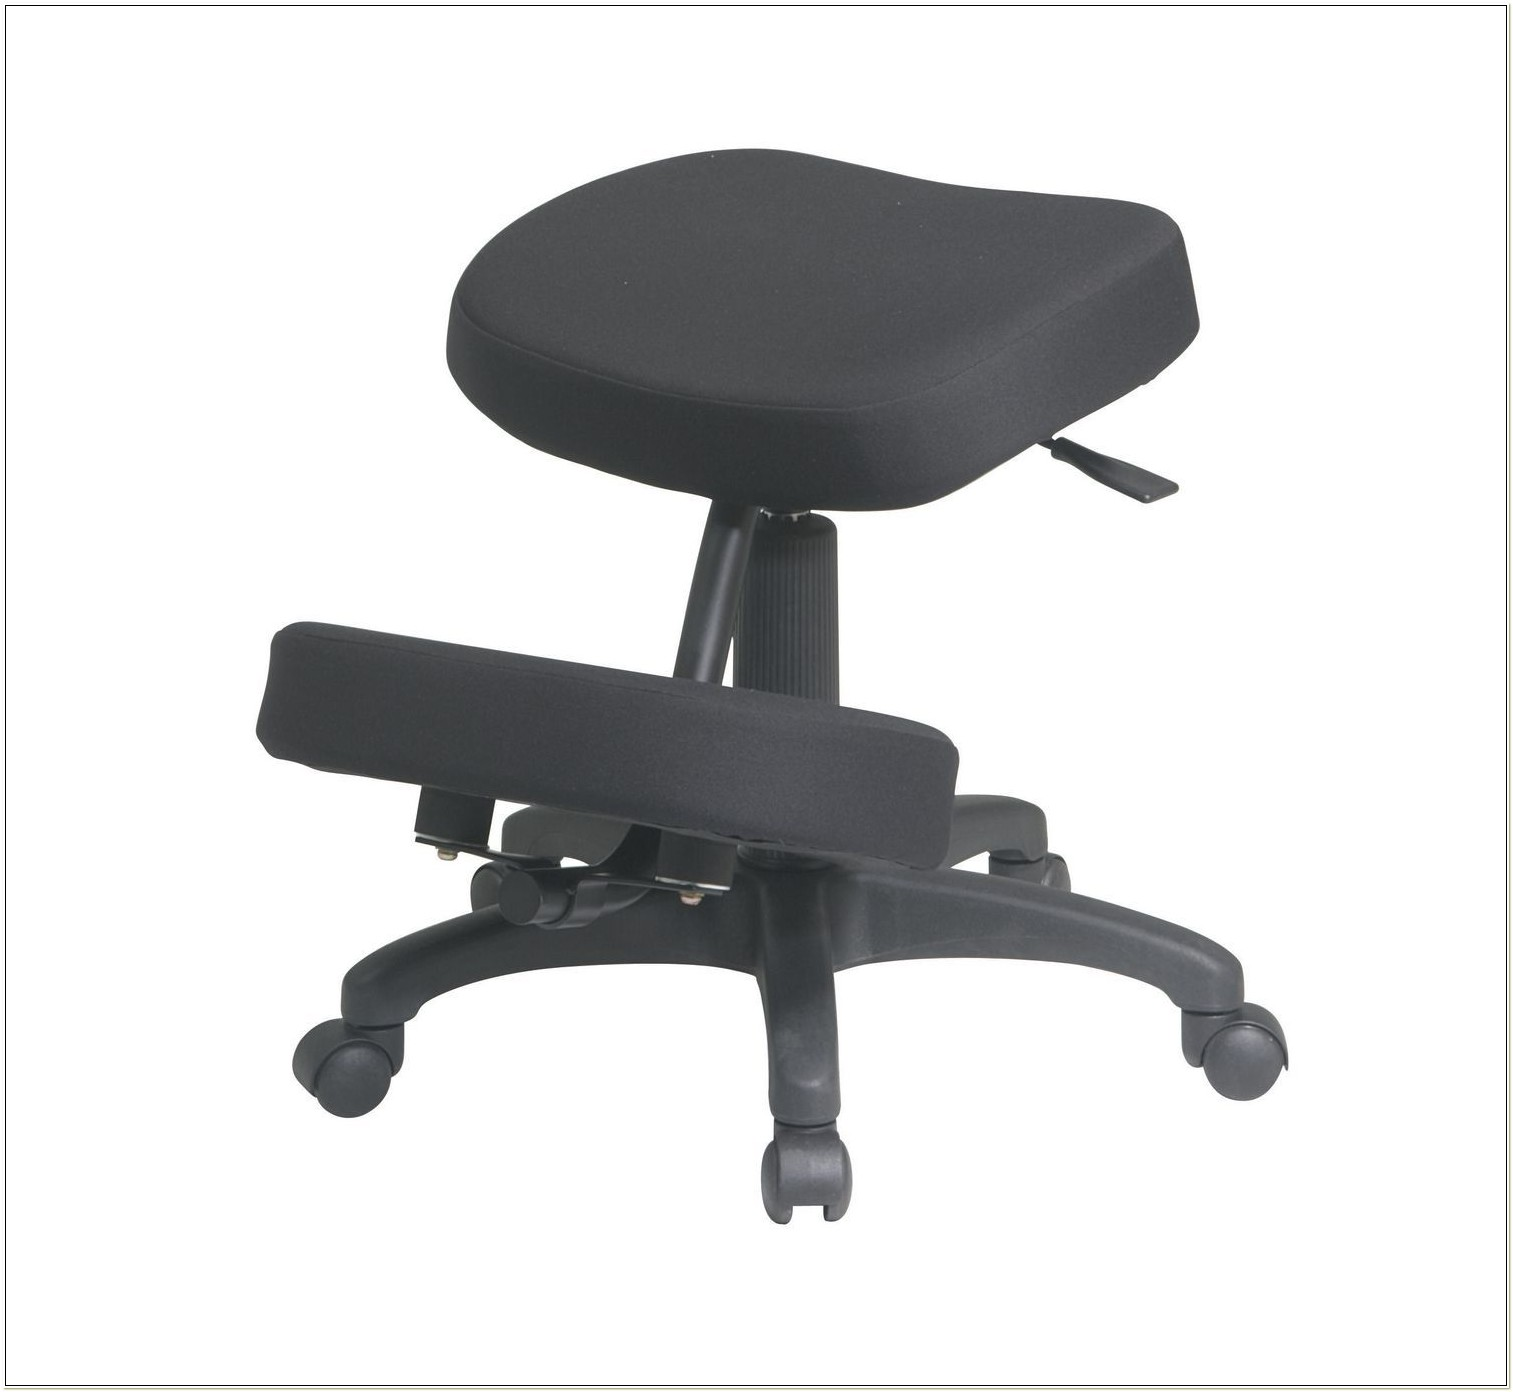 Office Star Worksmart Ergonomic Knee Chair